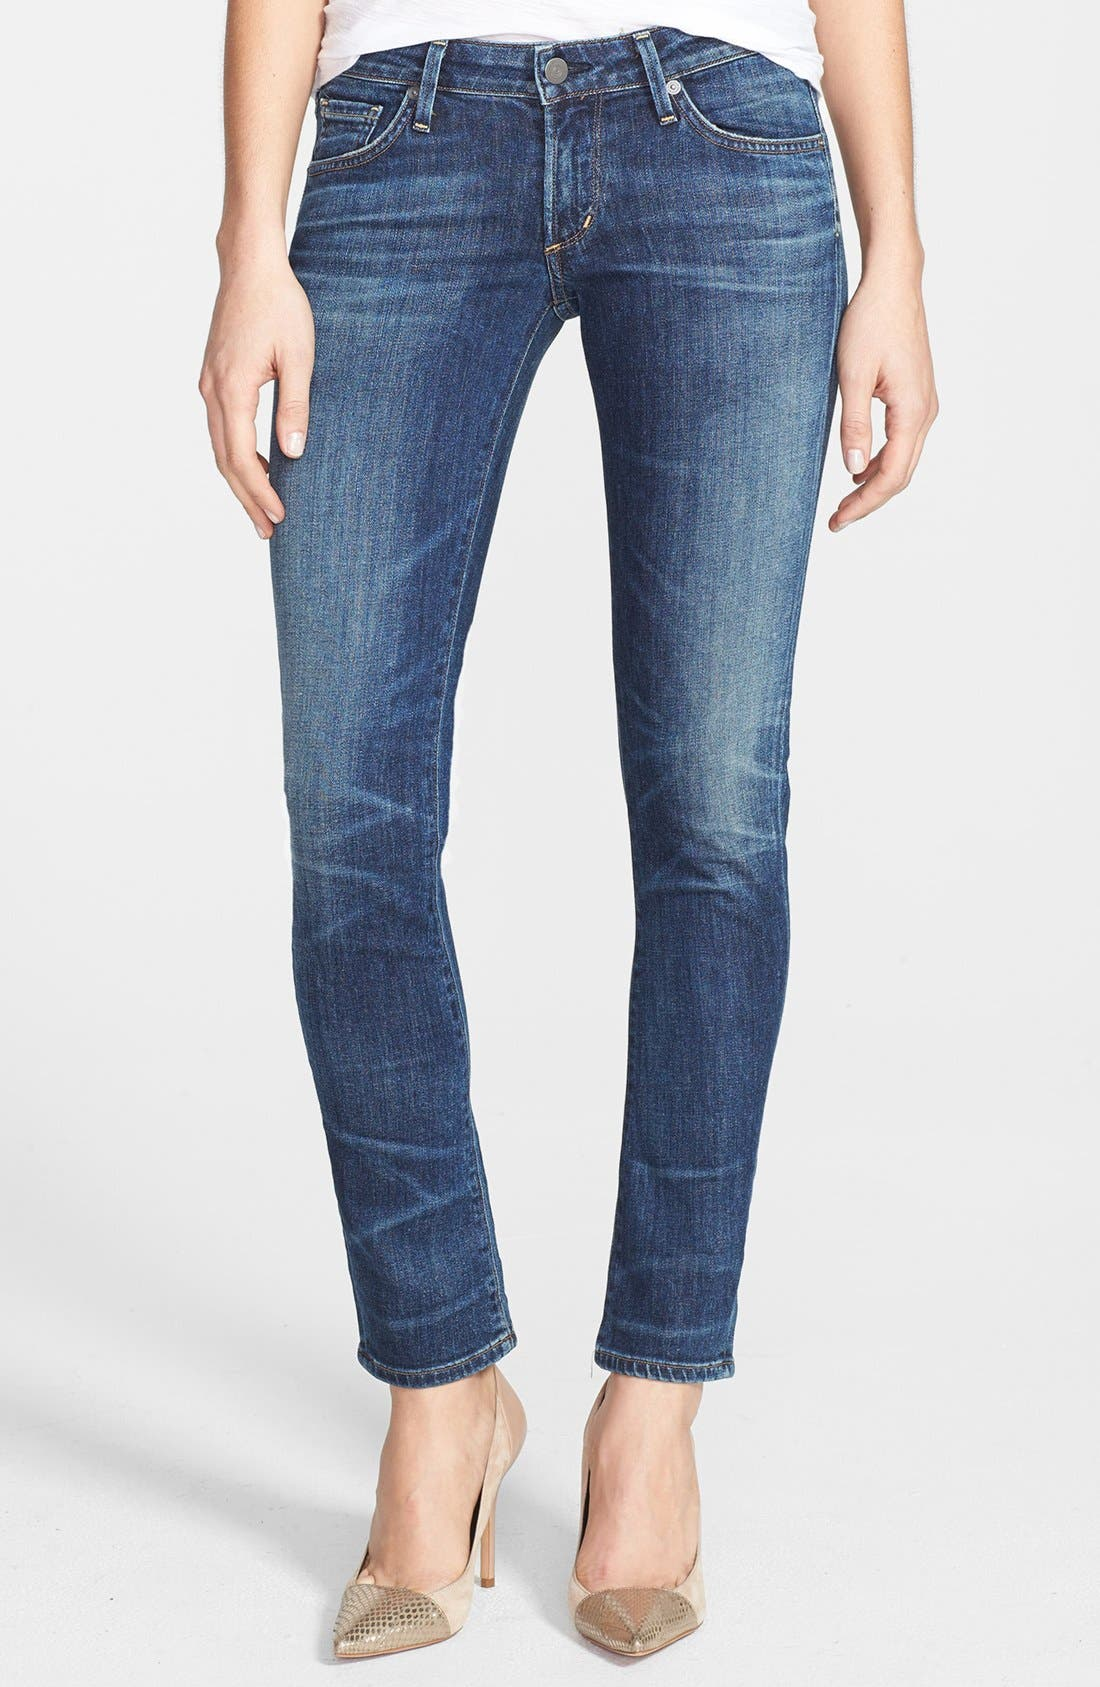 Main Image - Citizens of Humanity 'Racer' Whiskered Skinny Jeans (Patina)